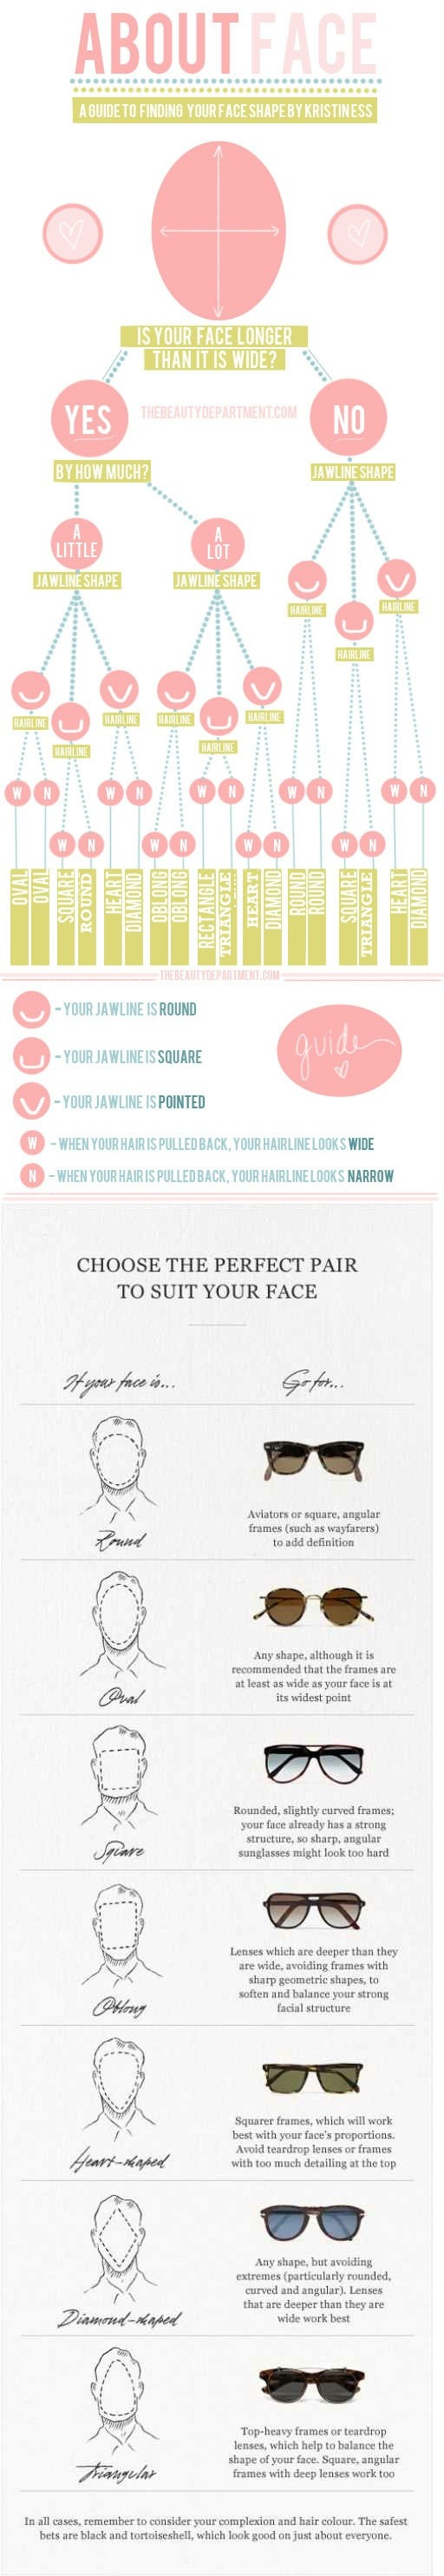 How to select the best pair of glasses/sunglasses to suit my face ...